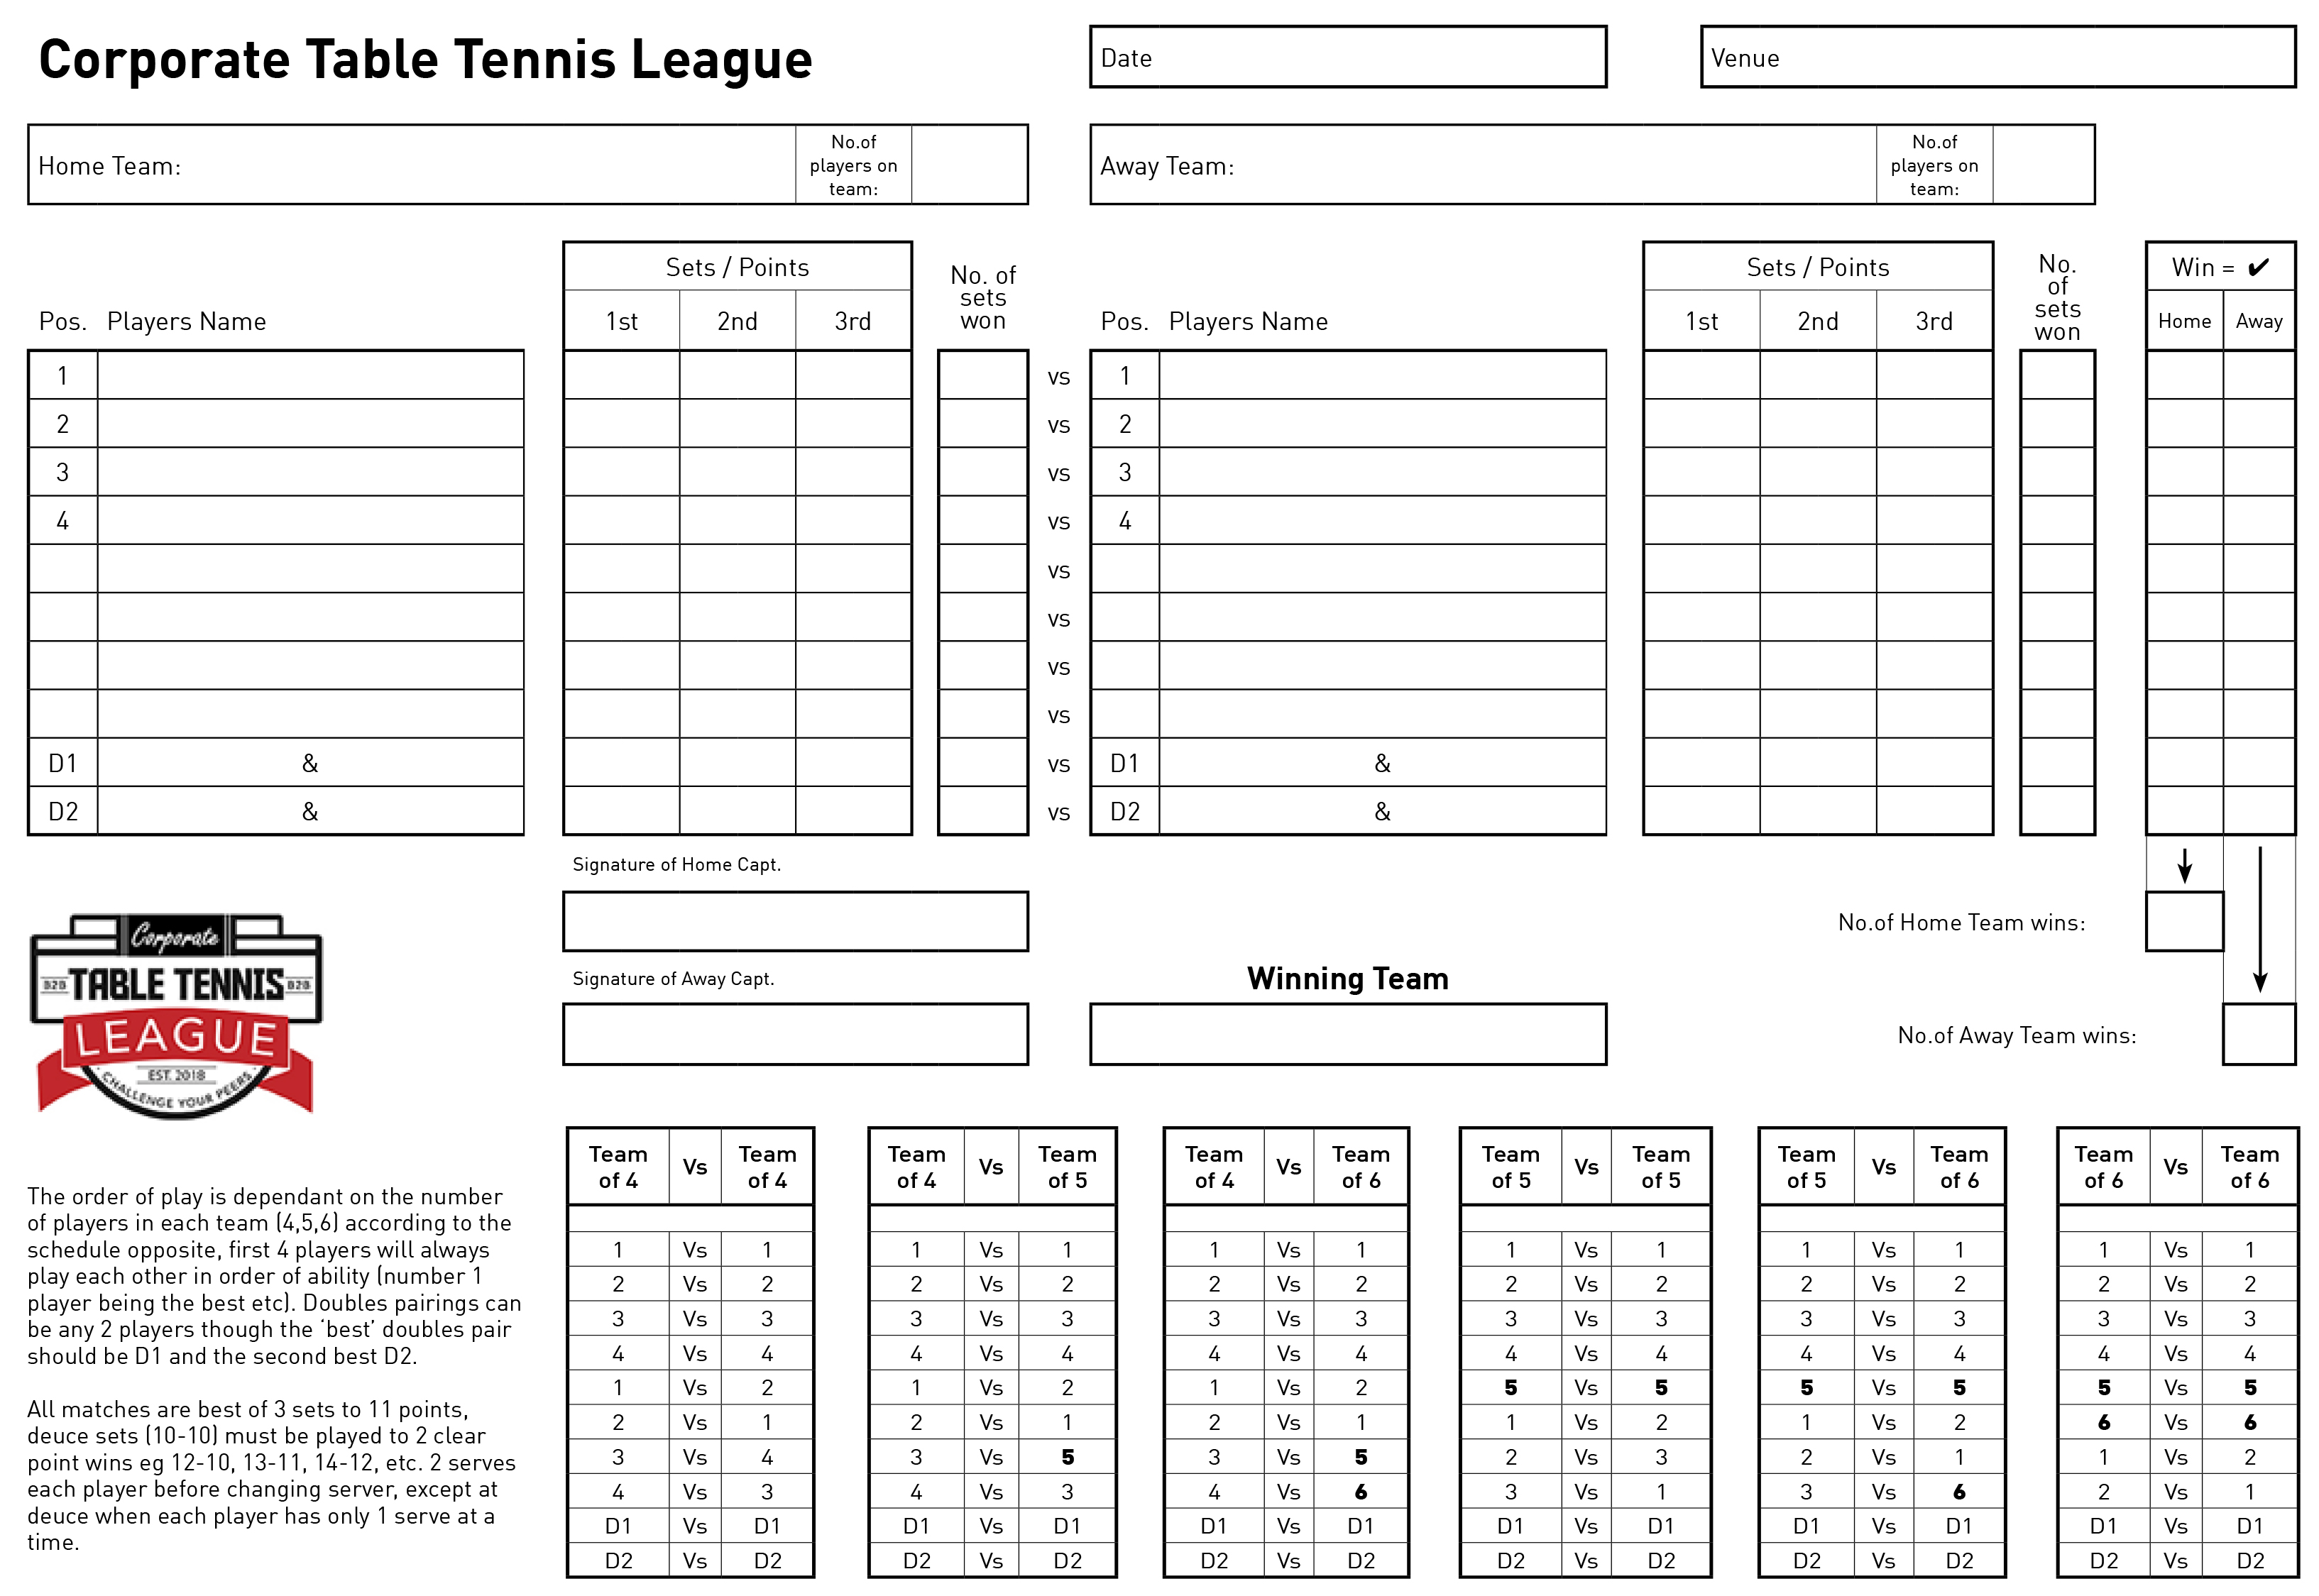 Corporate Table Tennis League Match Sheets (best of 3 sets)